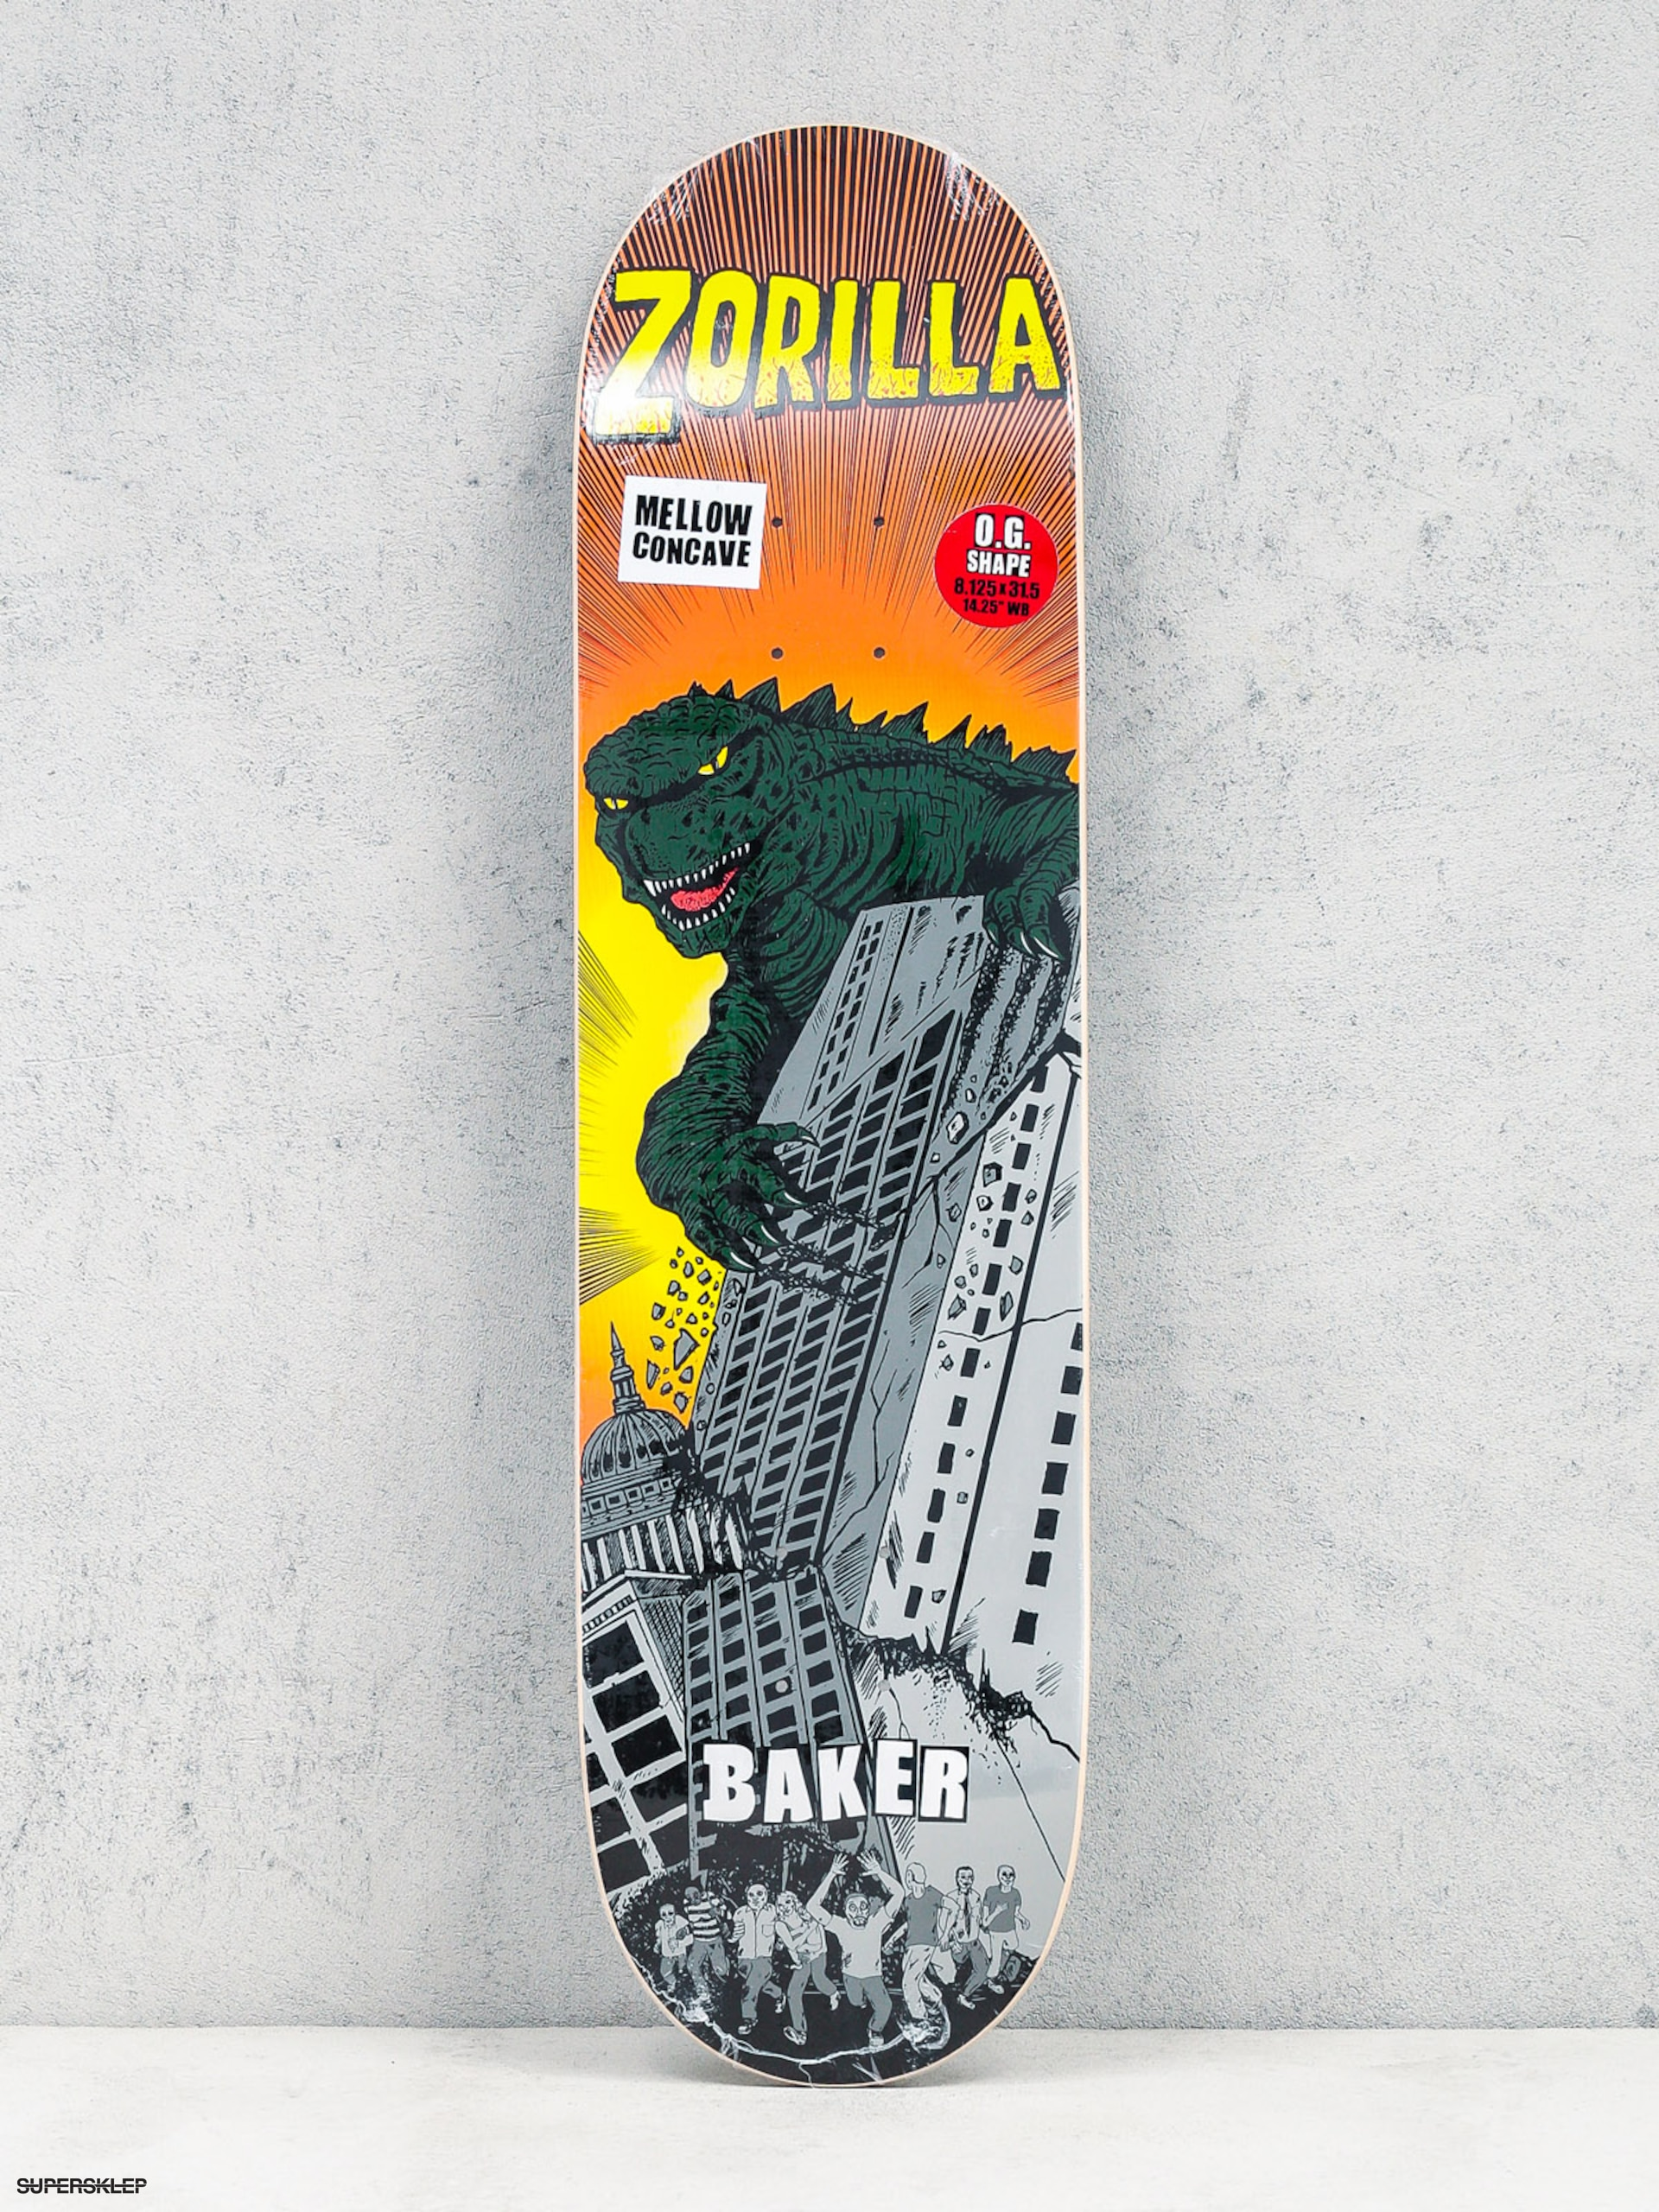 Doska Baker Rz Rozilla (orange/green)